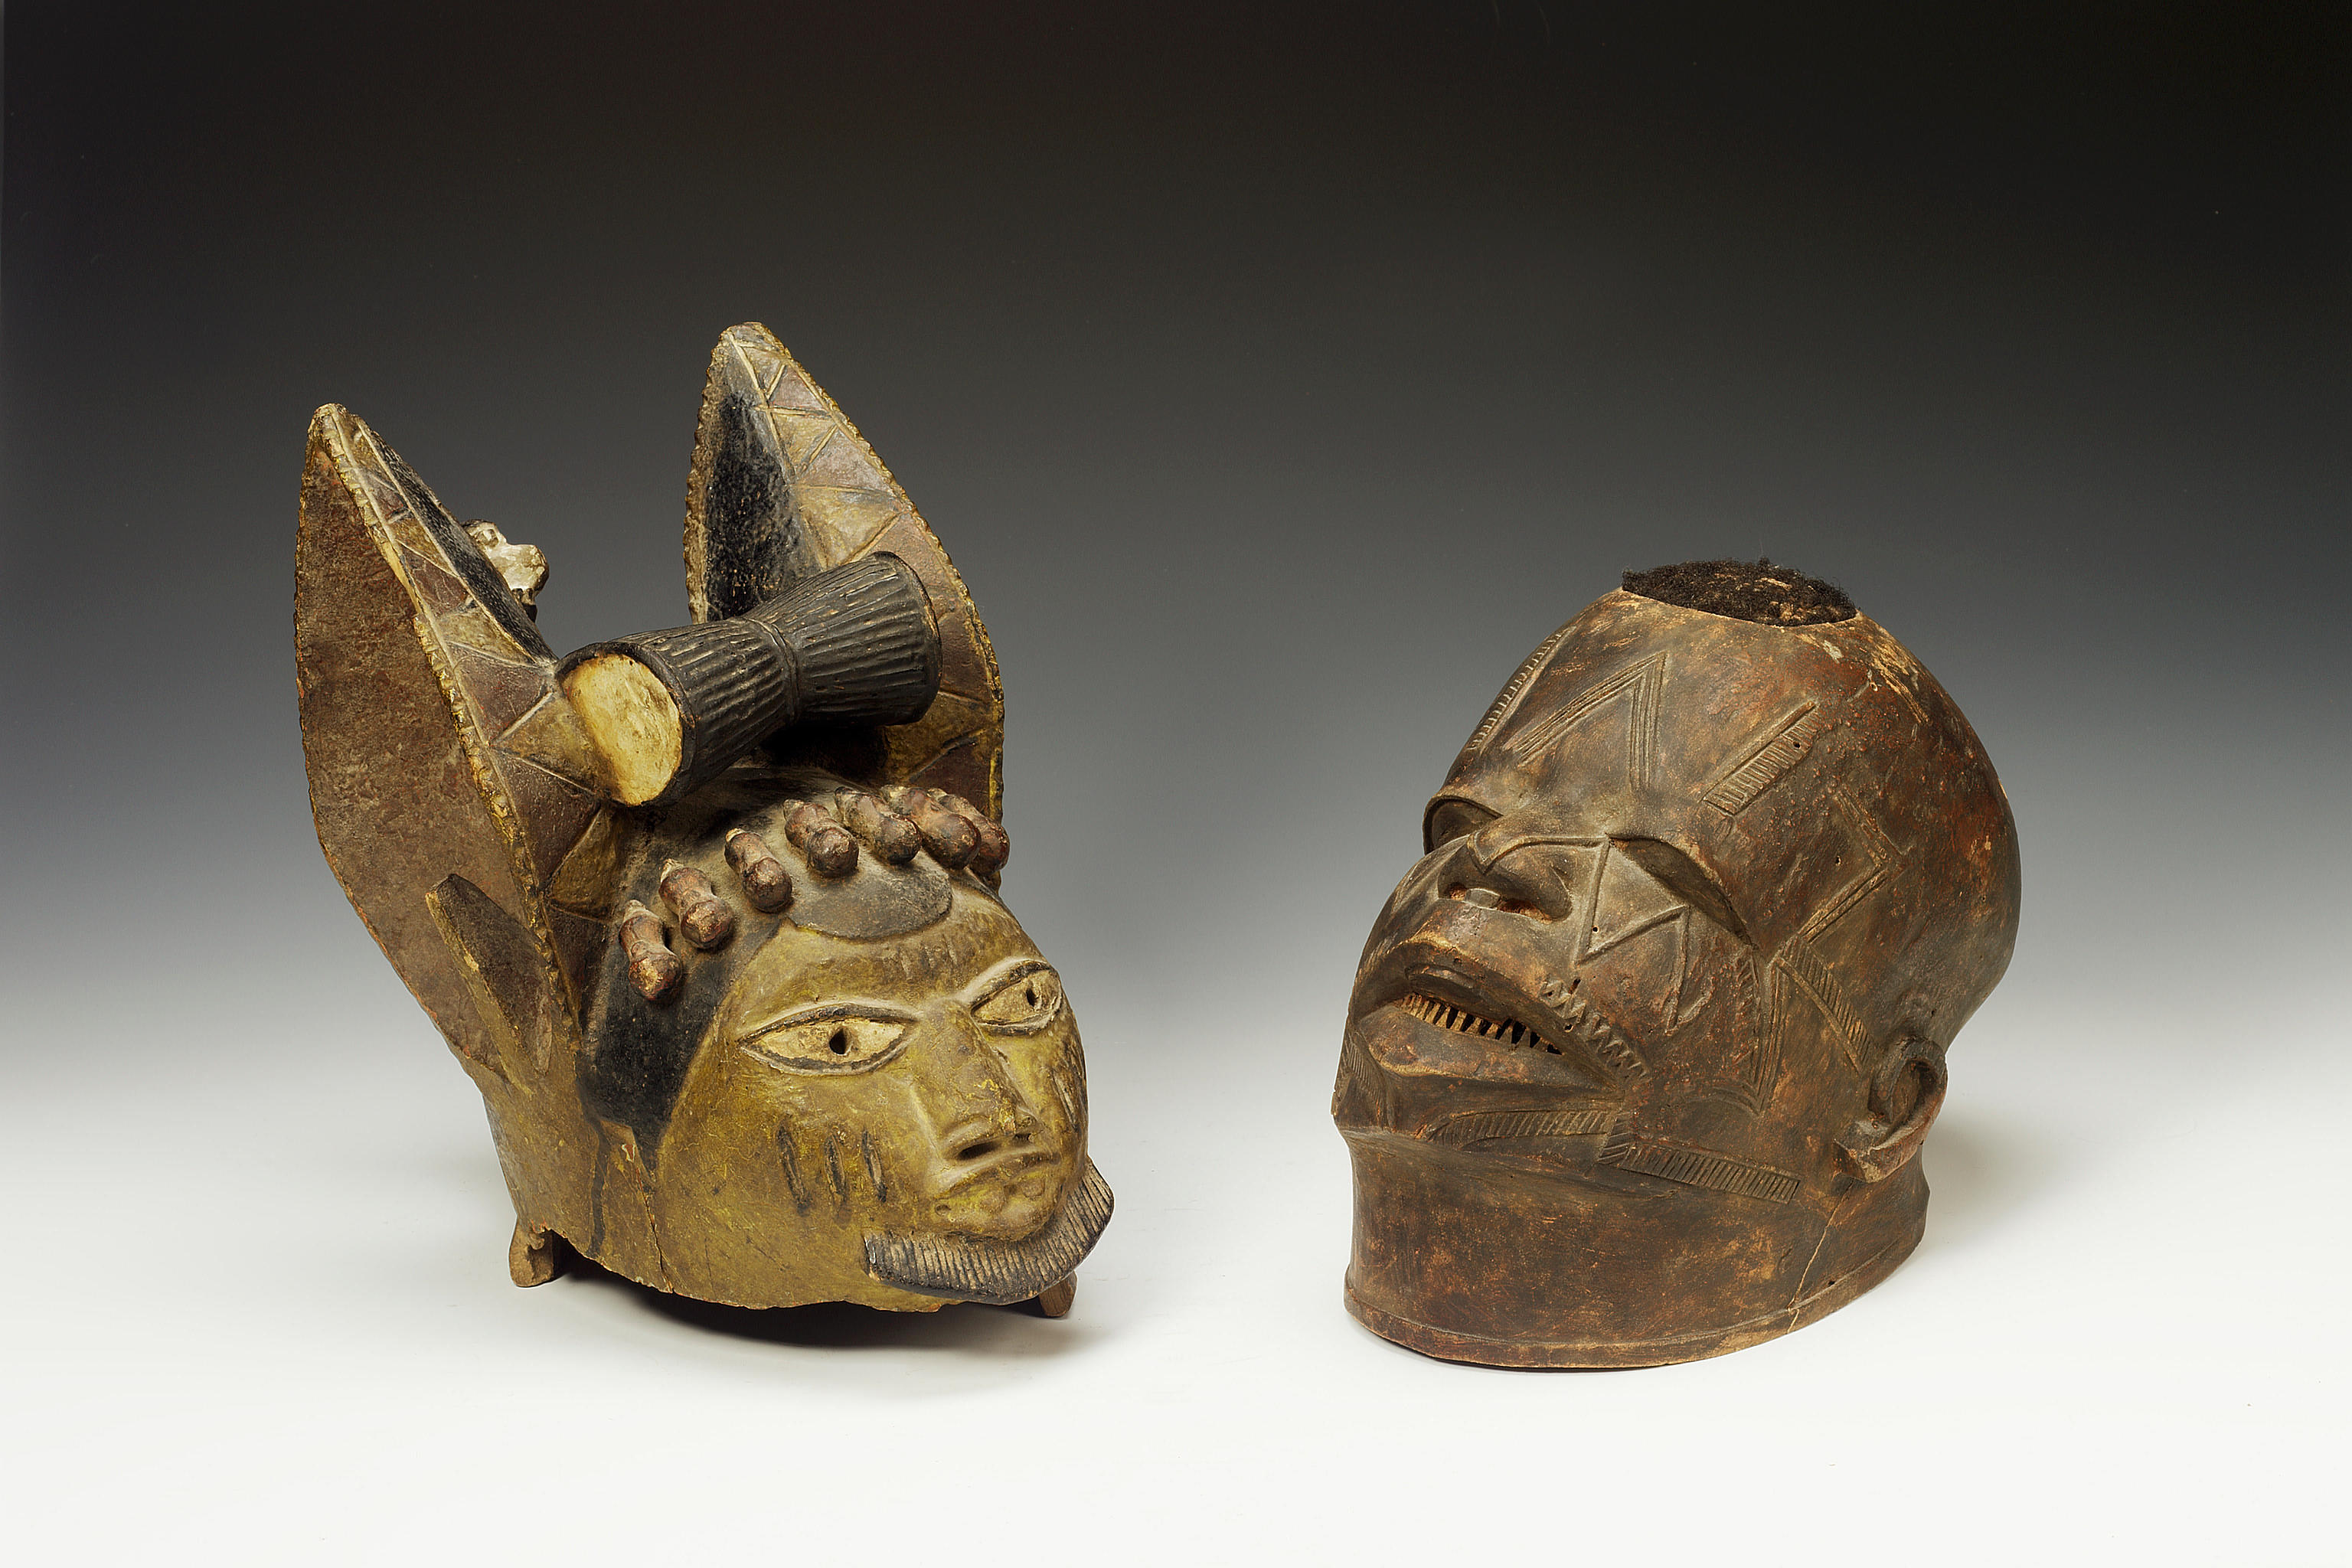 A Yoruba helmet mask and a Makonde mask